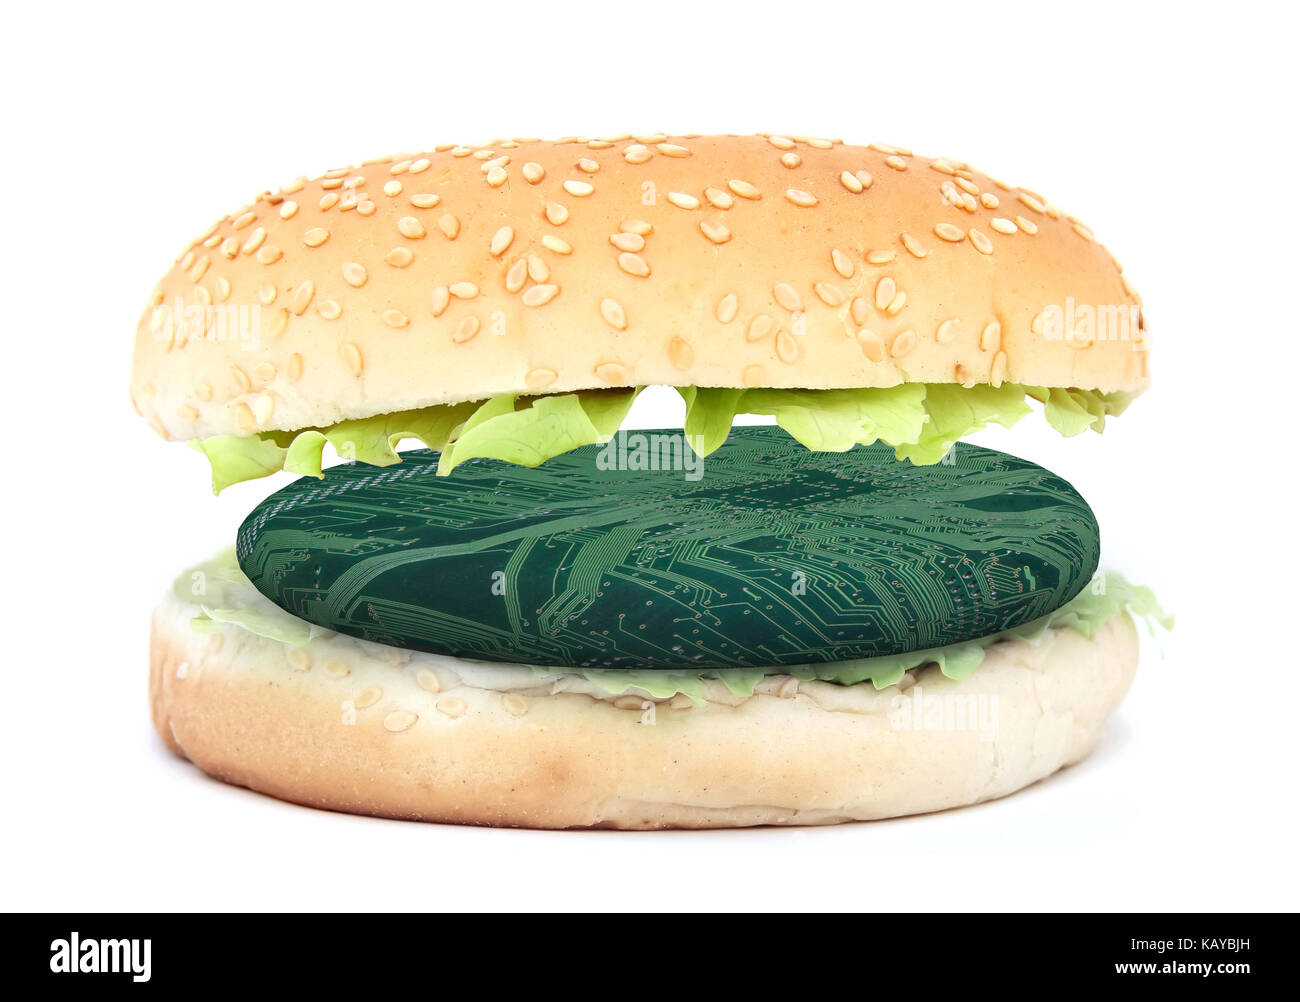 Sandwich with electronic burger, synthetic meat concept, 3d illustration - Stock Image